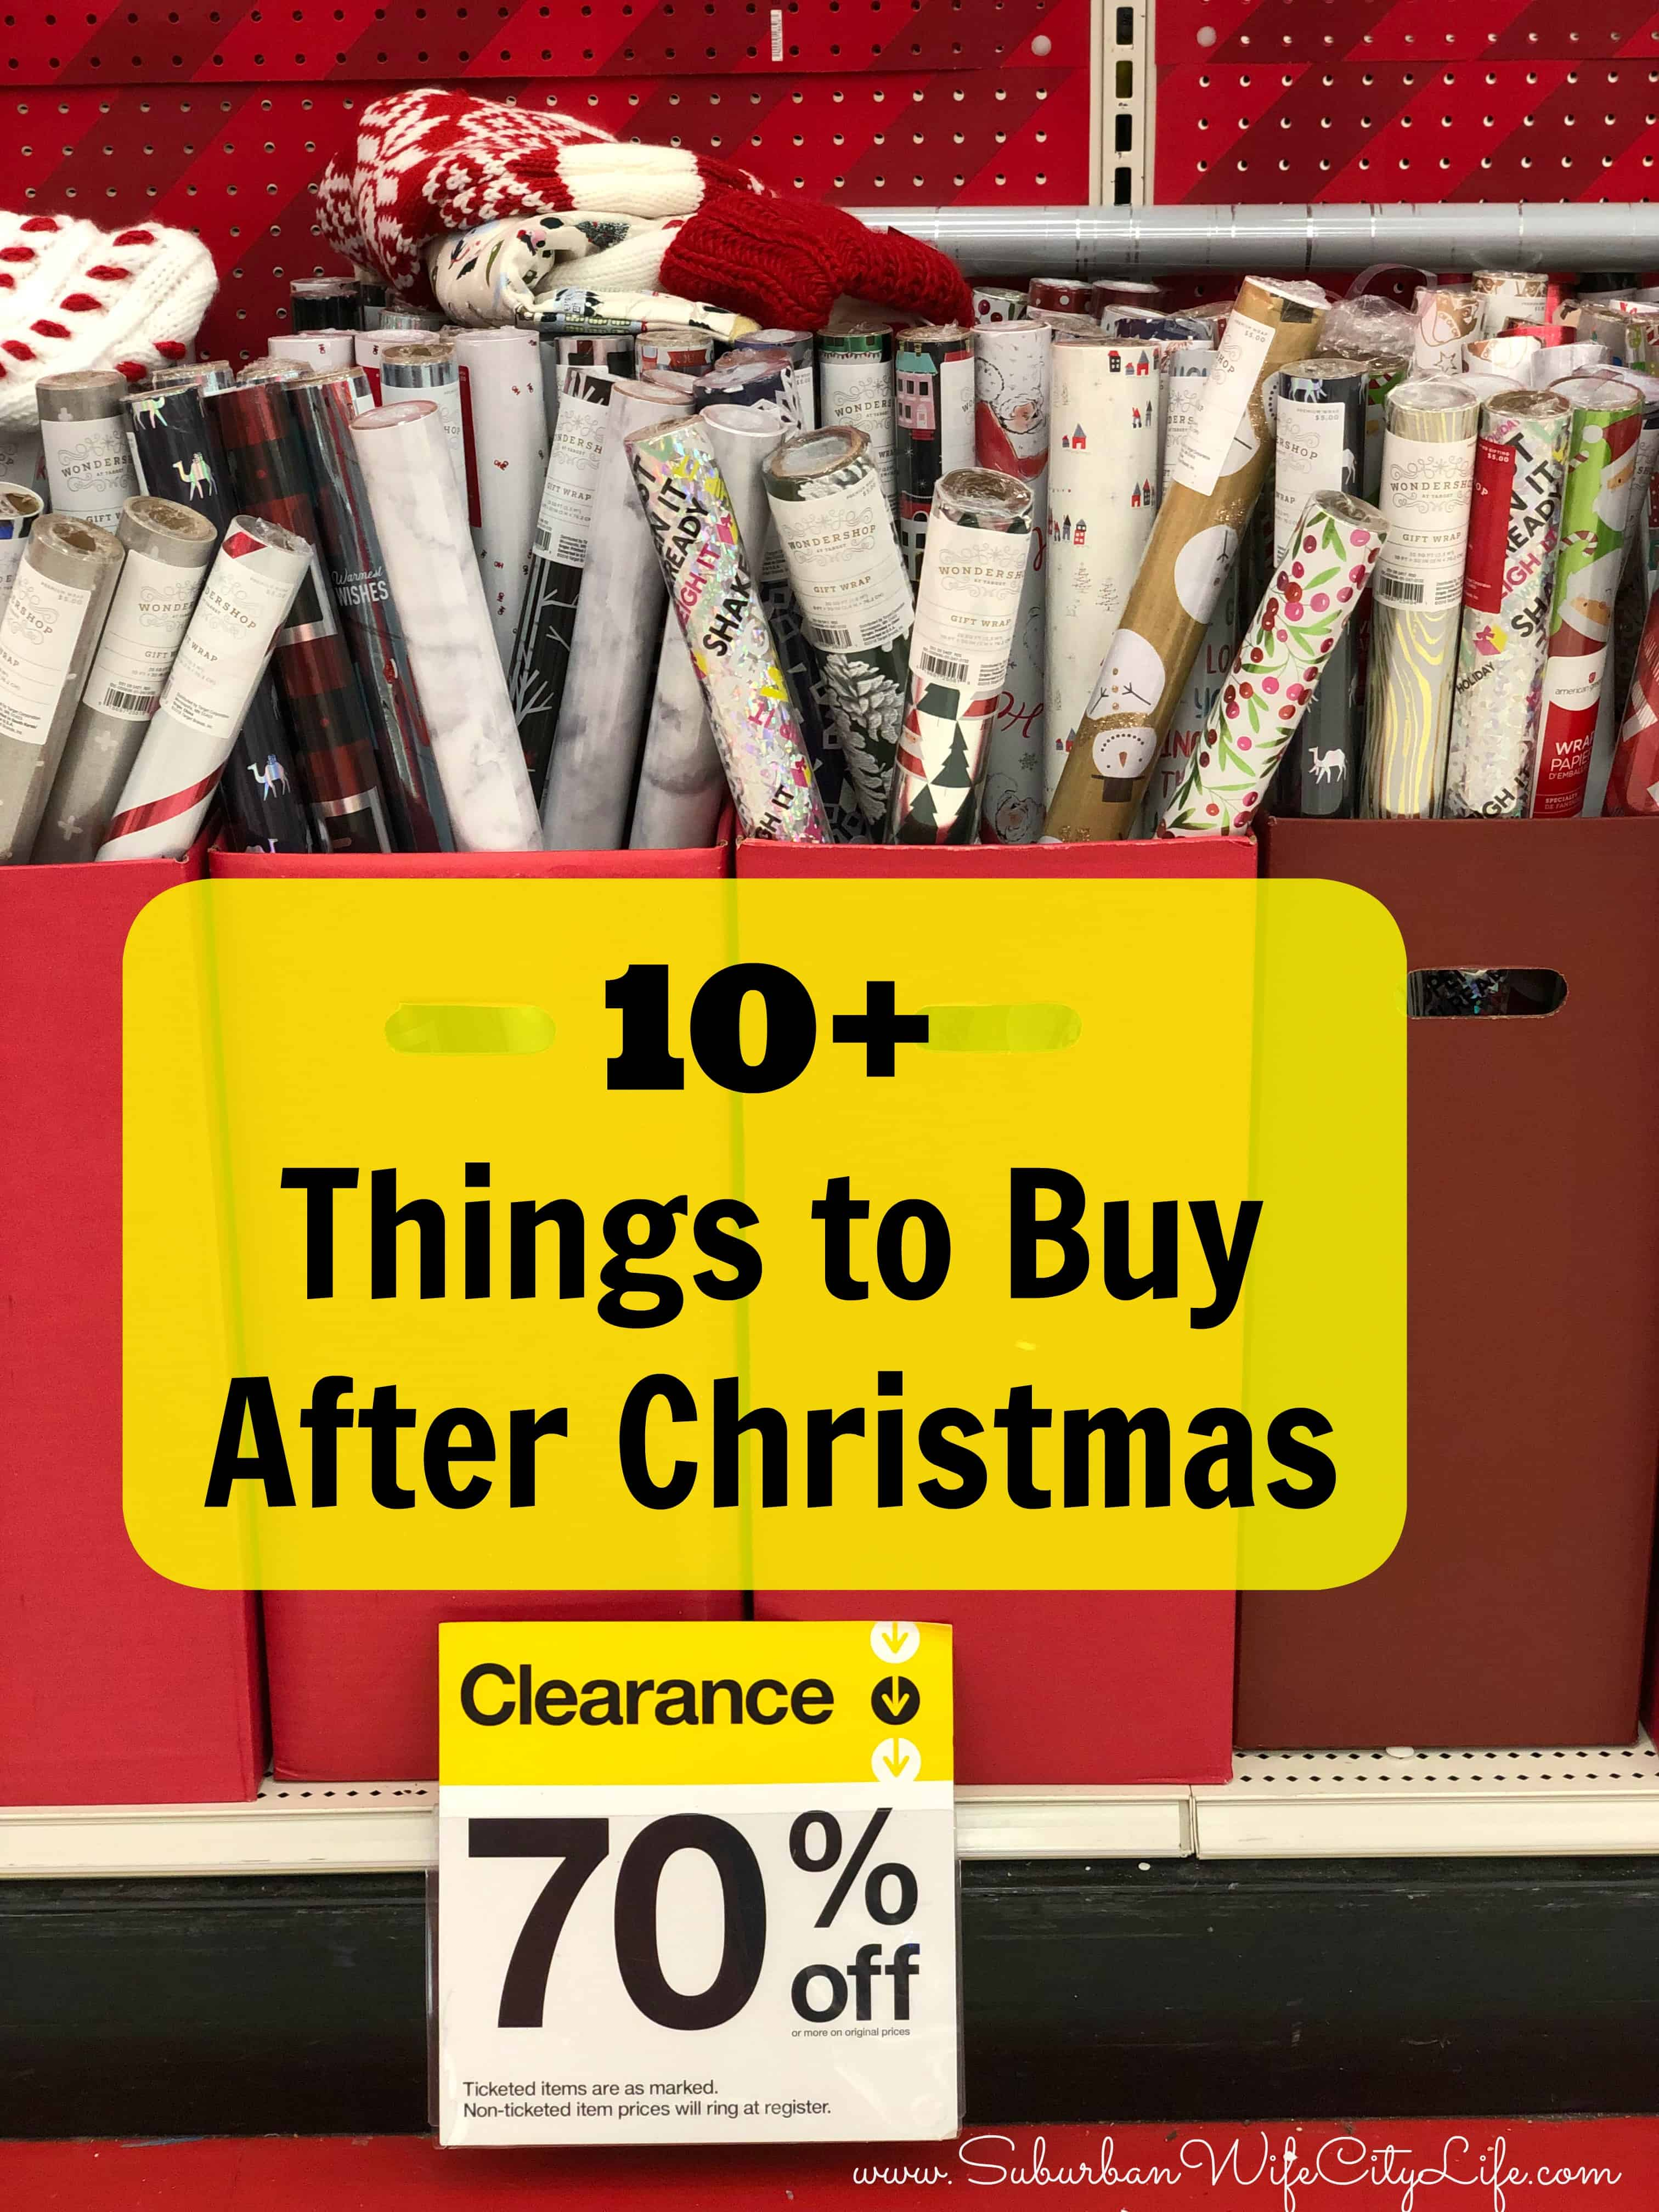 10+ Things to buy after Christmas